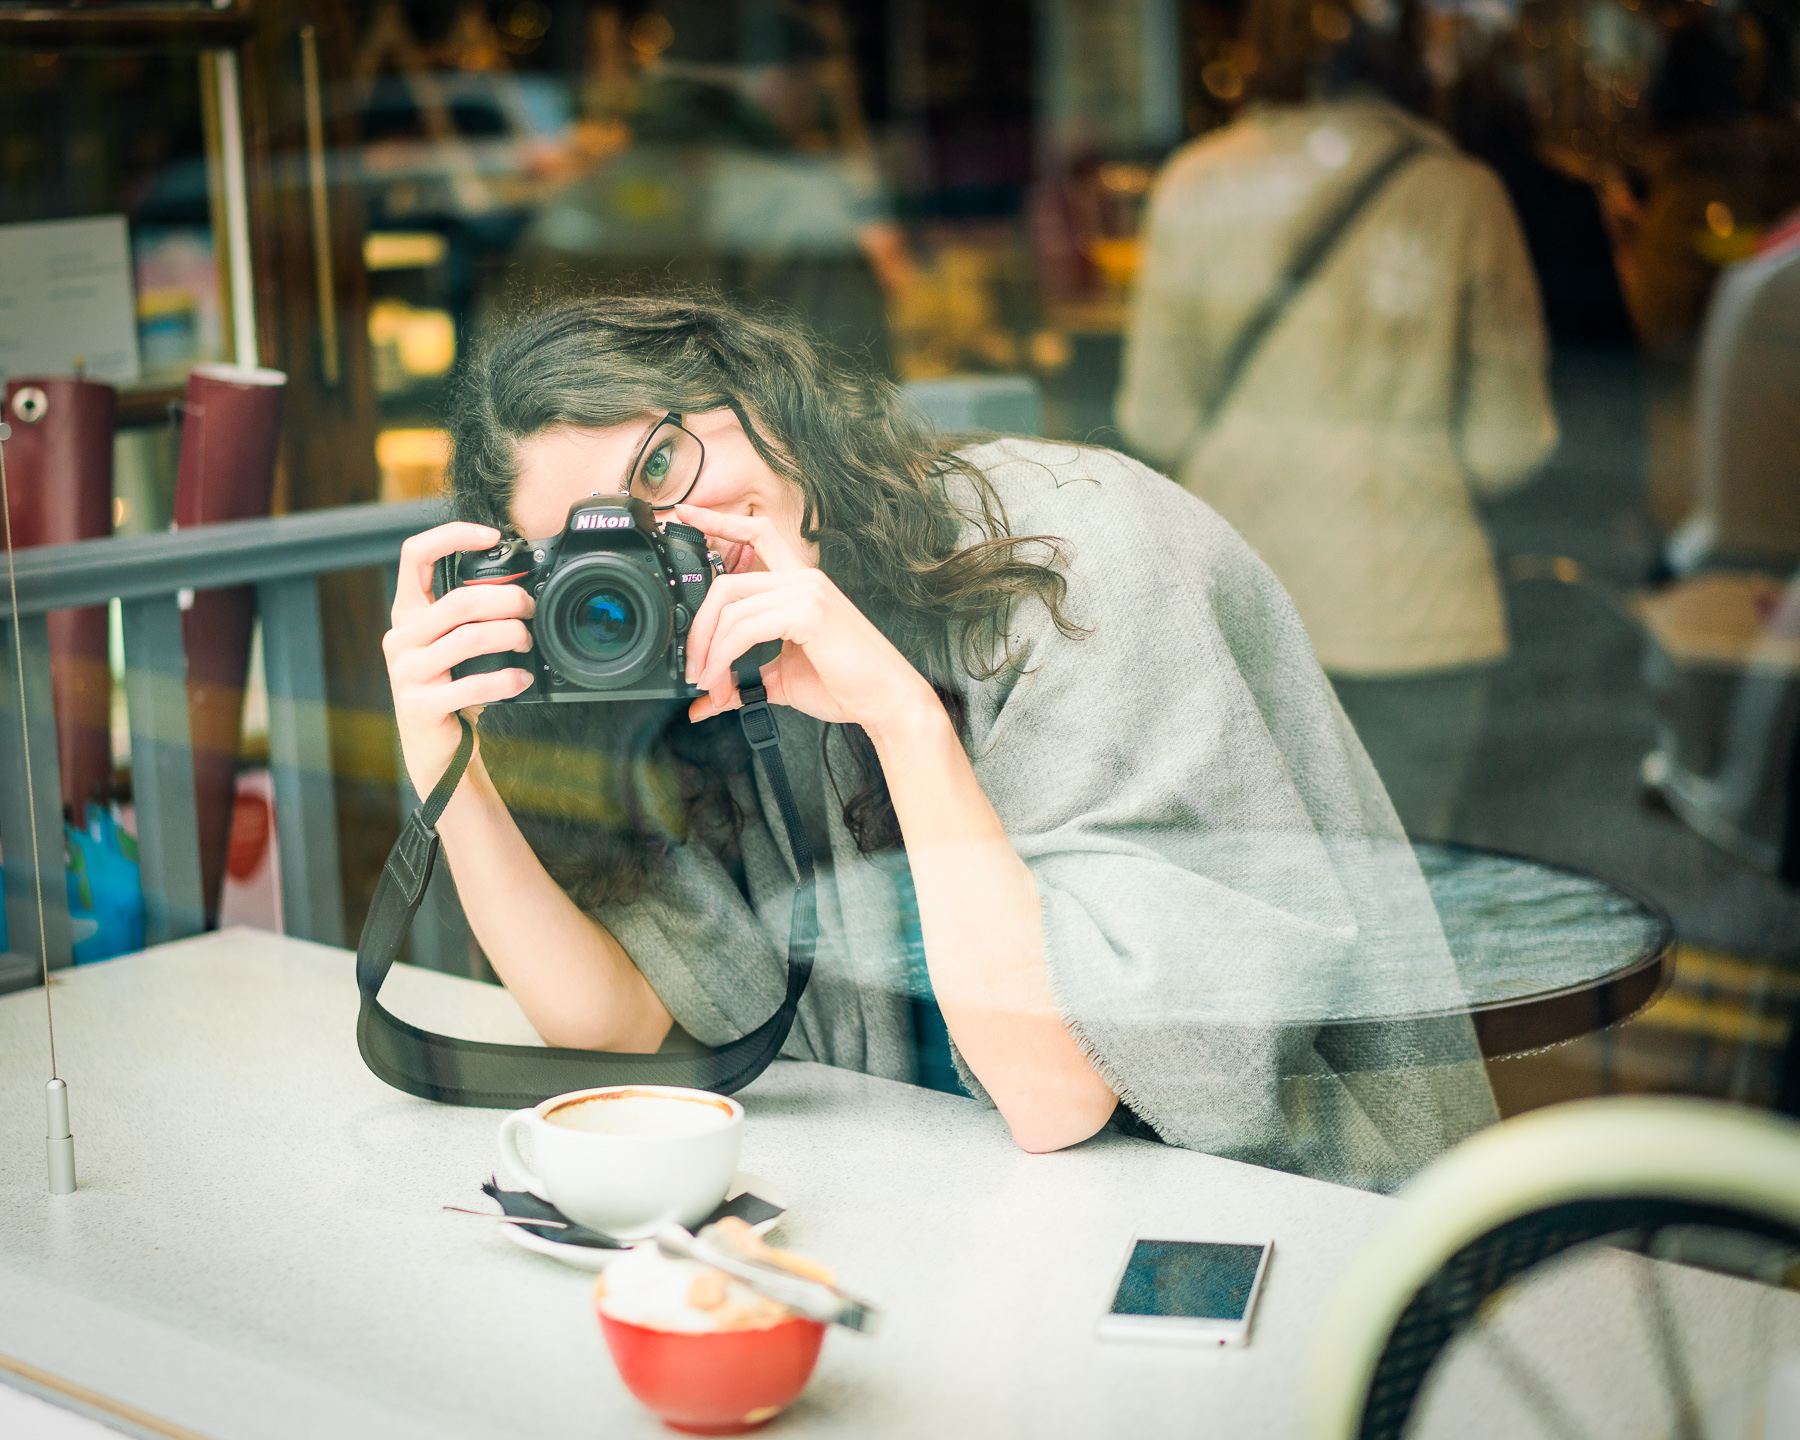 Lizzy-Biggs-Photography-coffee-and-camera